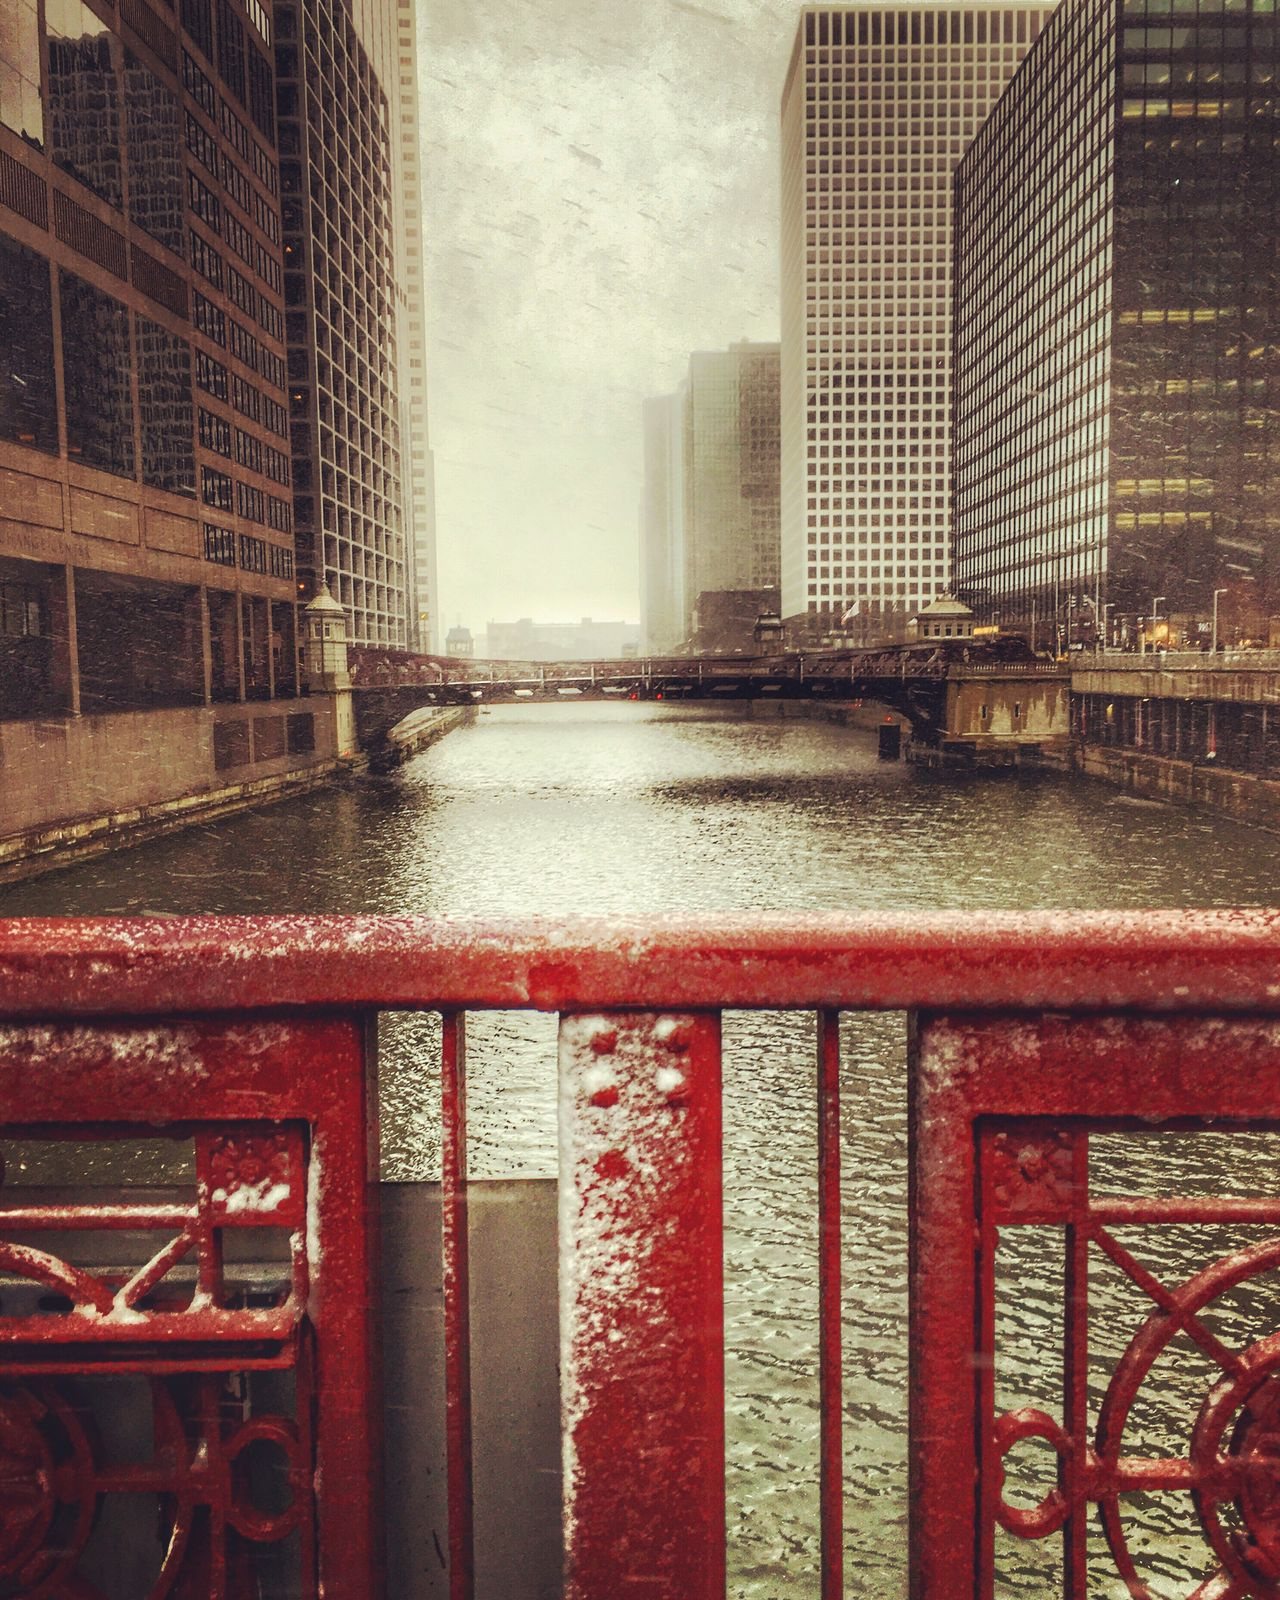 Chicago Chicagoloop Yesterday #Latepost Snow Snow Day Chicagoriver Chicagoriverwalk Madisonstreetliftbridge Chicago Architecture Beautiful Windycity